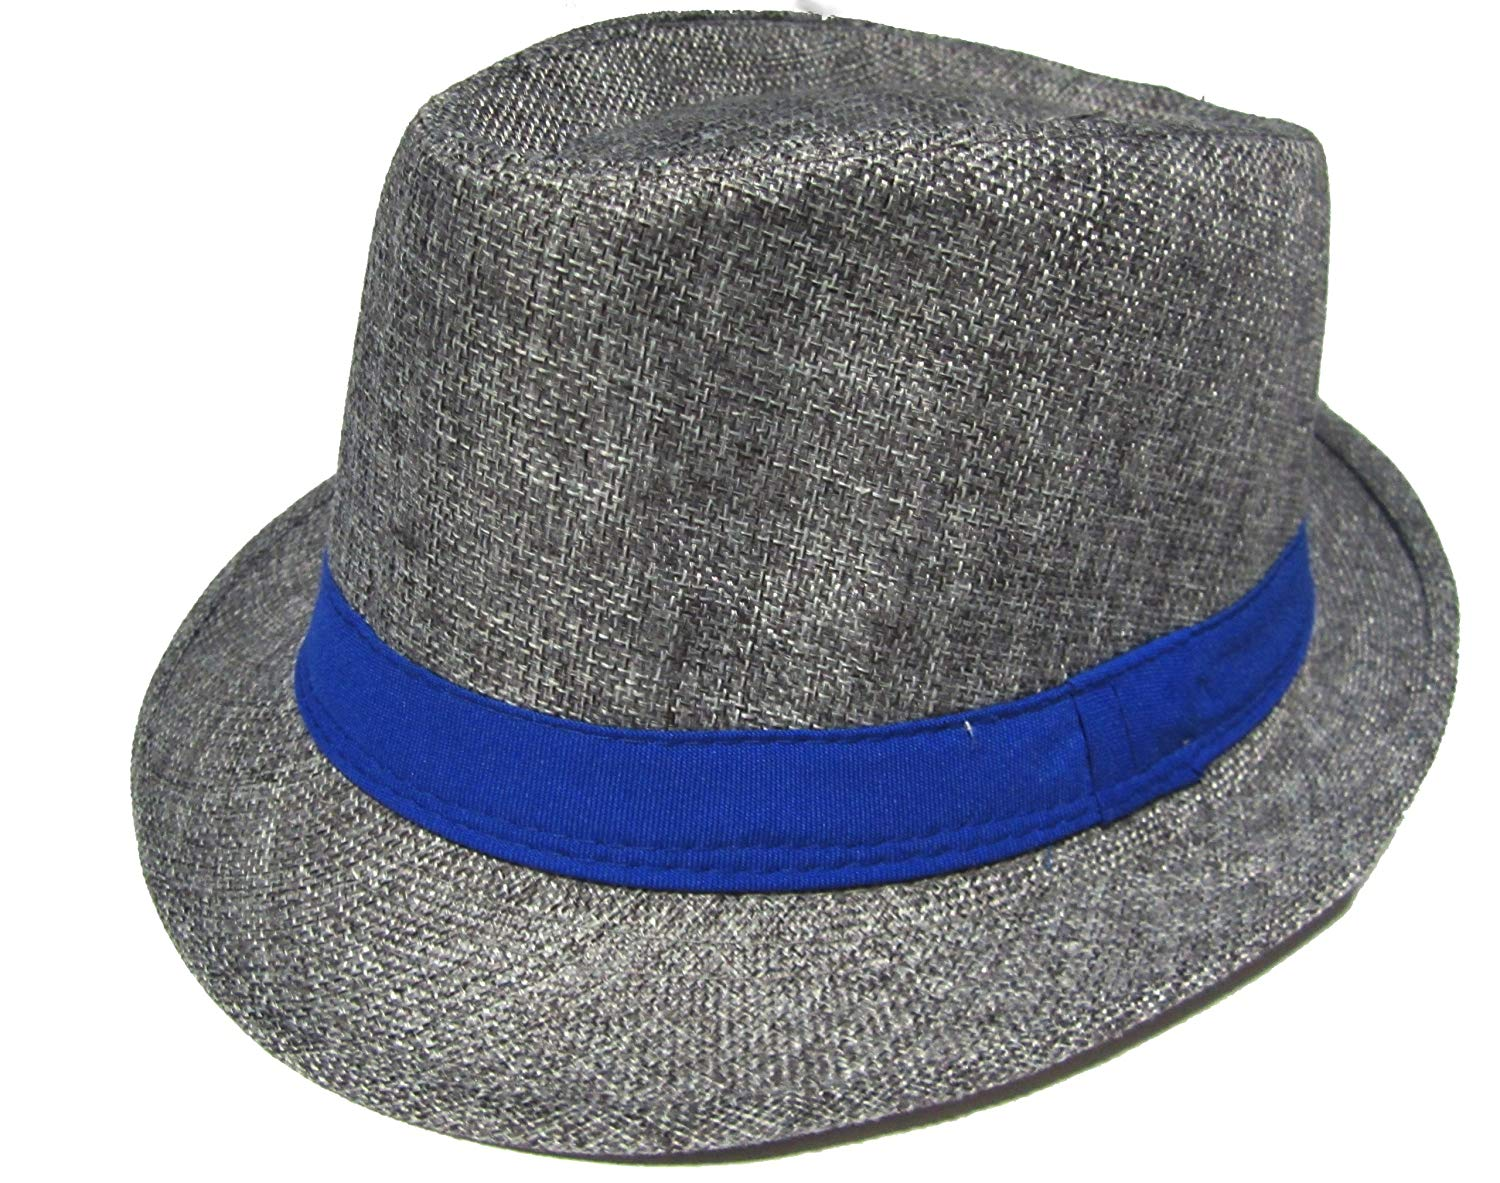 87da0c1bf9ea7 Get Quotations · Gray and Blue Fedora Hat - Blue Band Fedora Hat